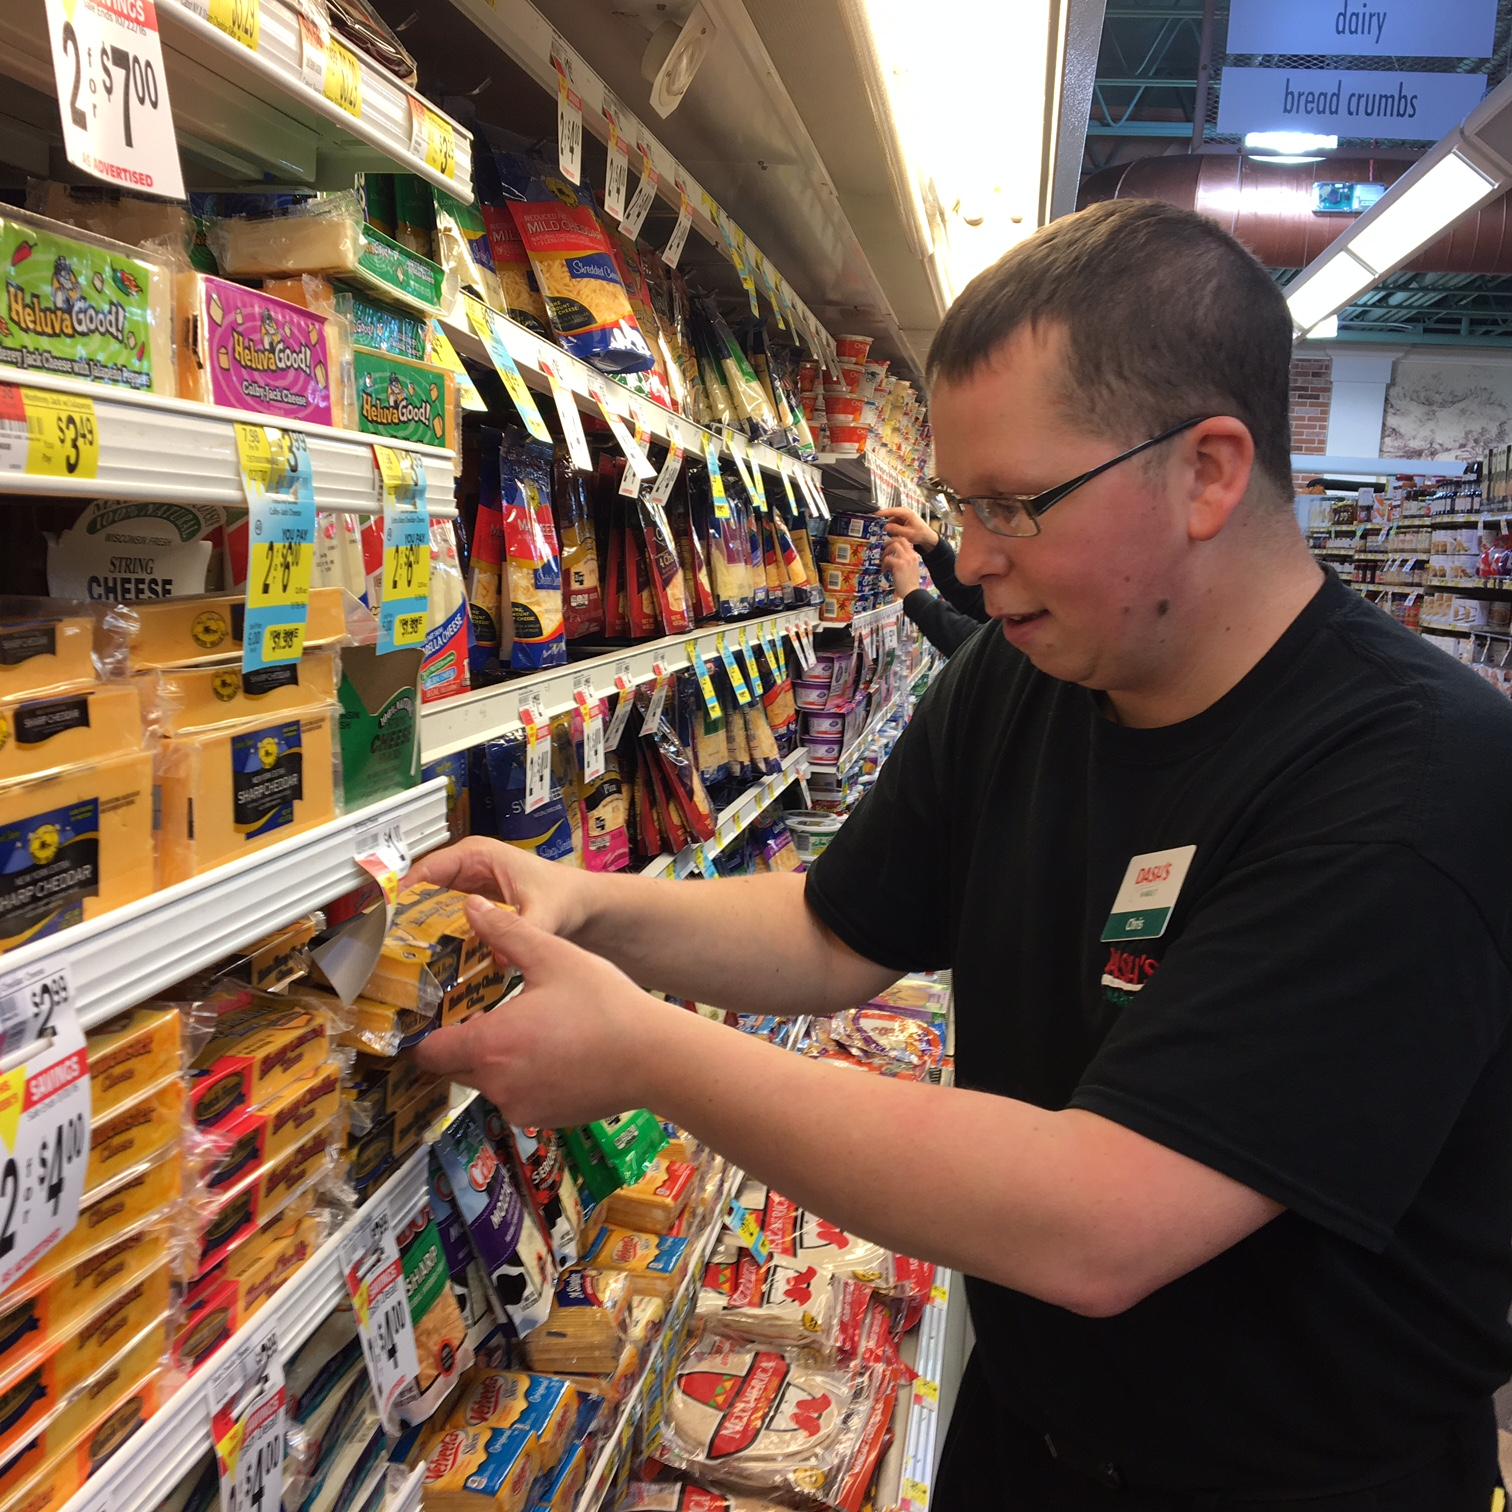 Chris Taverna pushes product up to the front of the shelves in both the dairy and frozen food sections at Dash's Market in Clarence. (Photos by Scott Scanlon/Buffalo News)